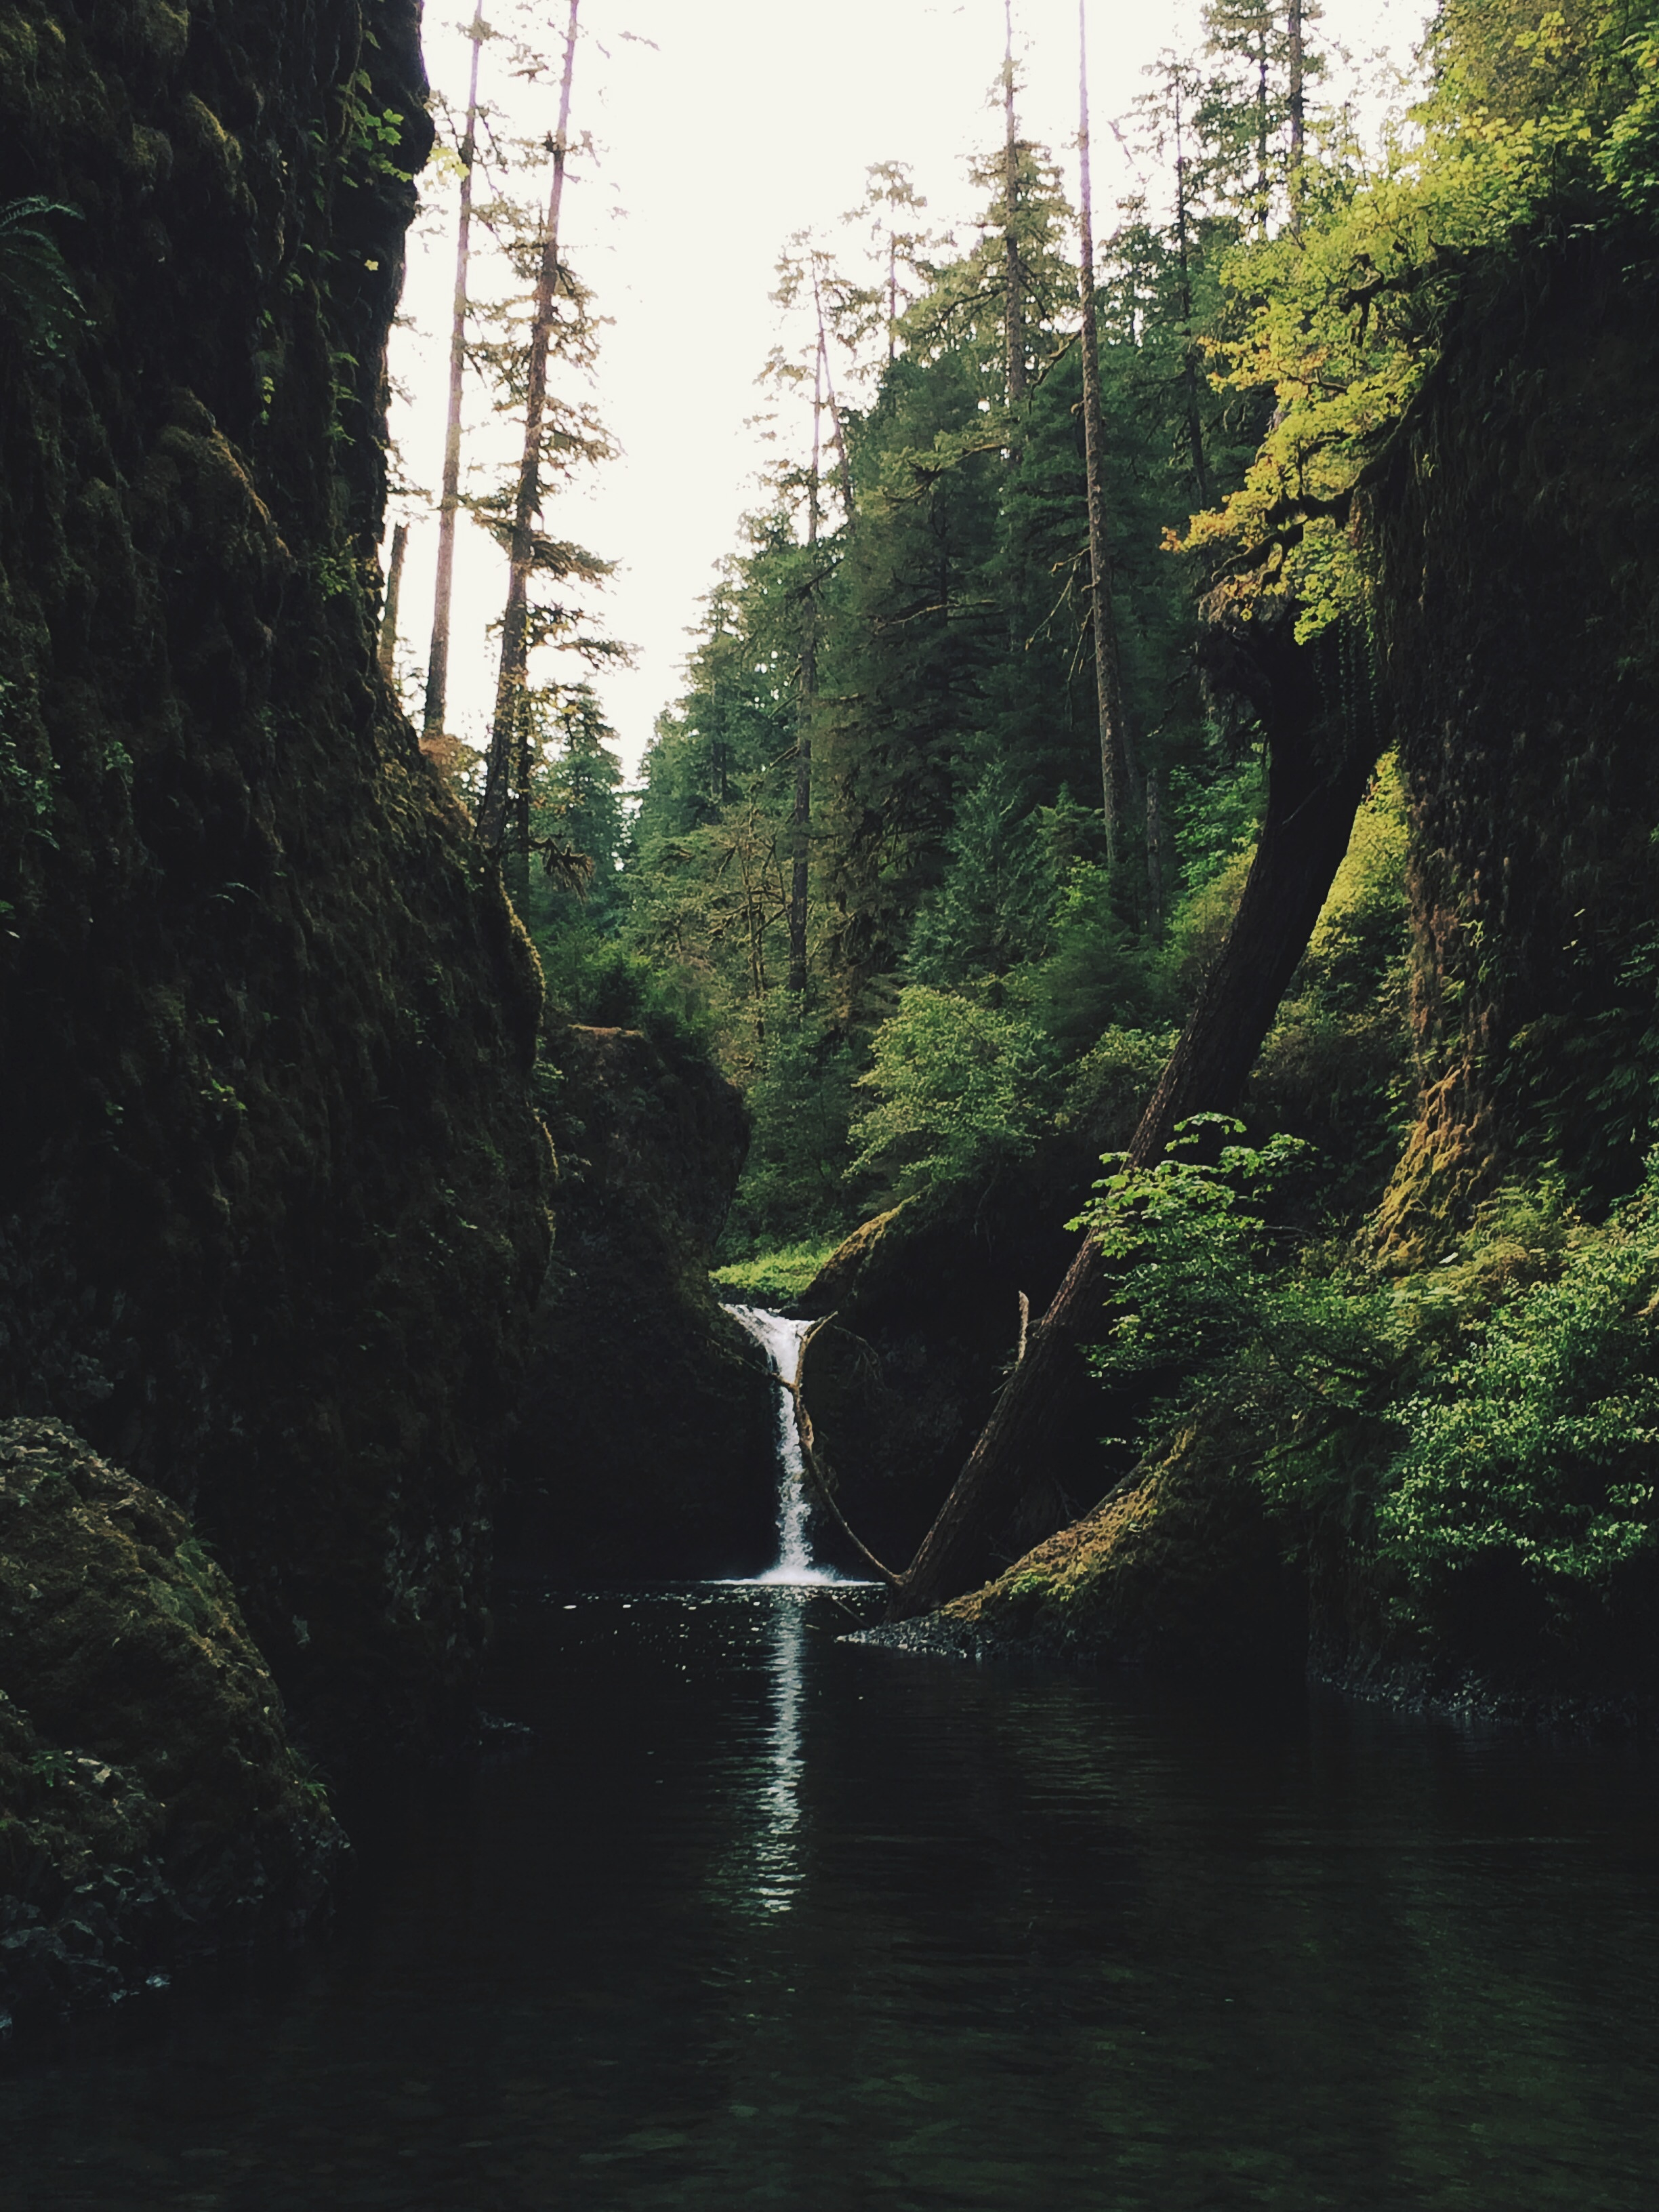 Punch Bowl Falls, OR